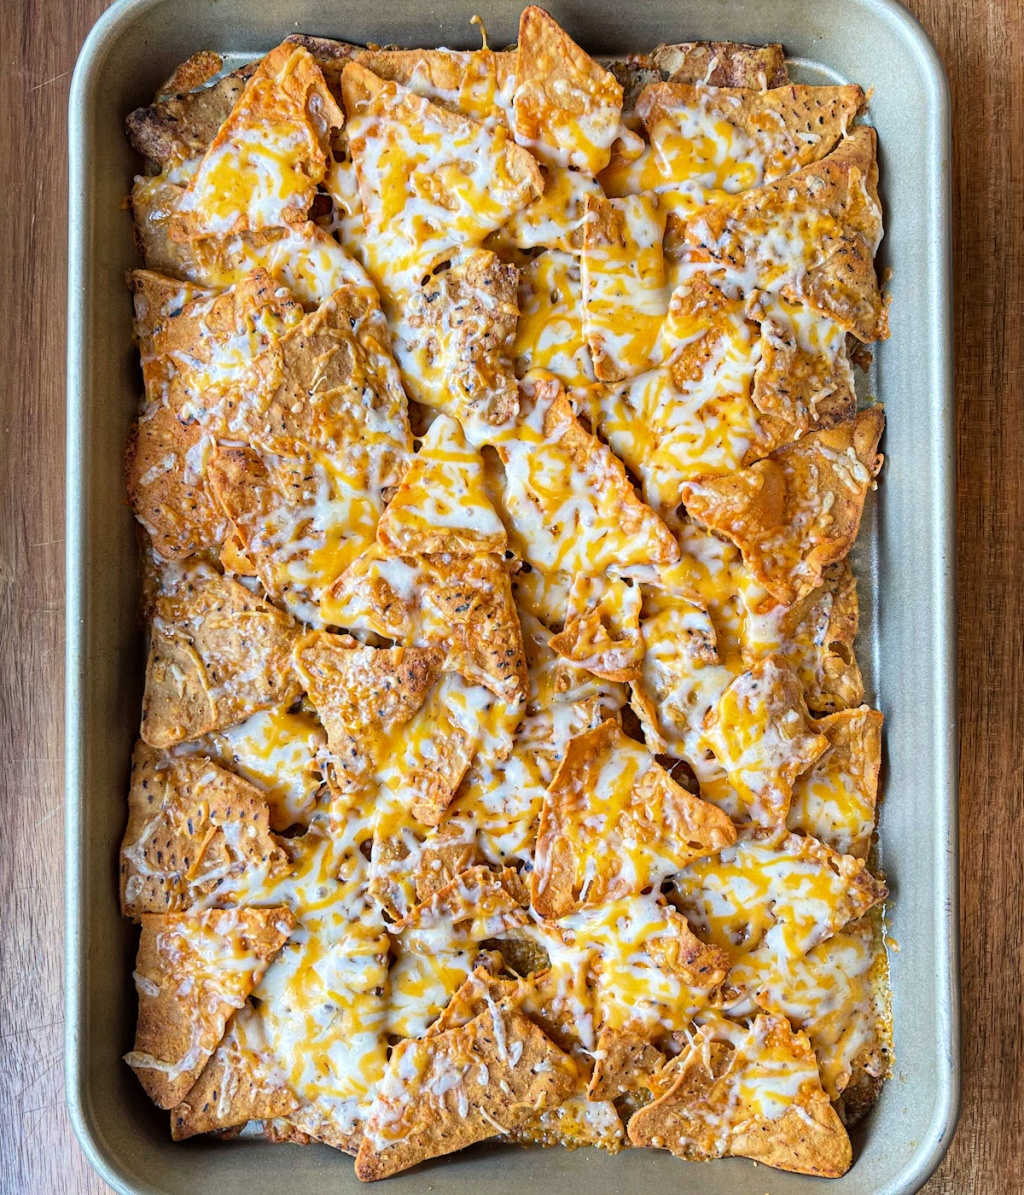 melted shredded cheese on HILO LIFE tortilla style chips